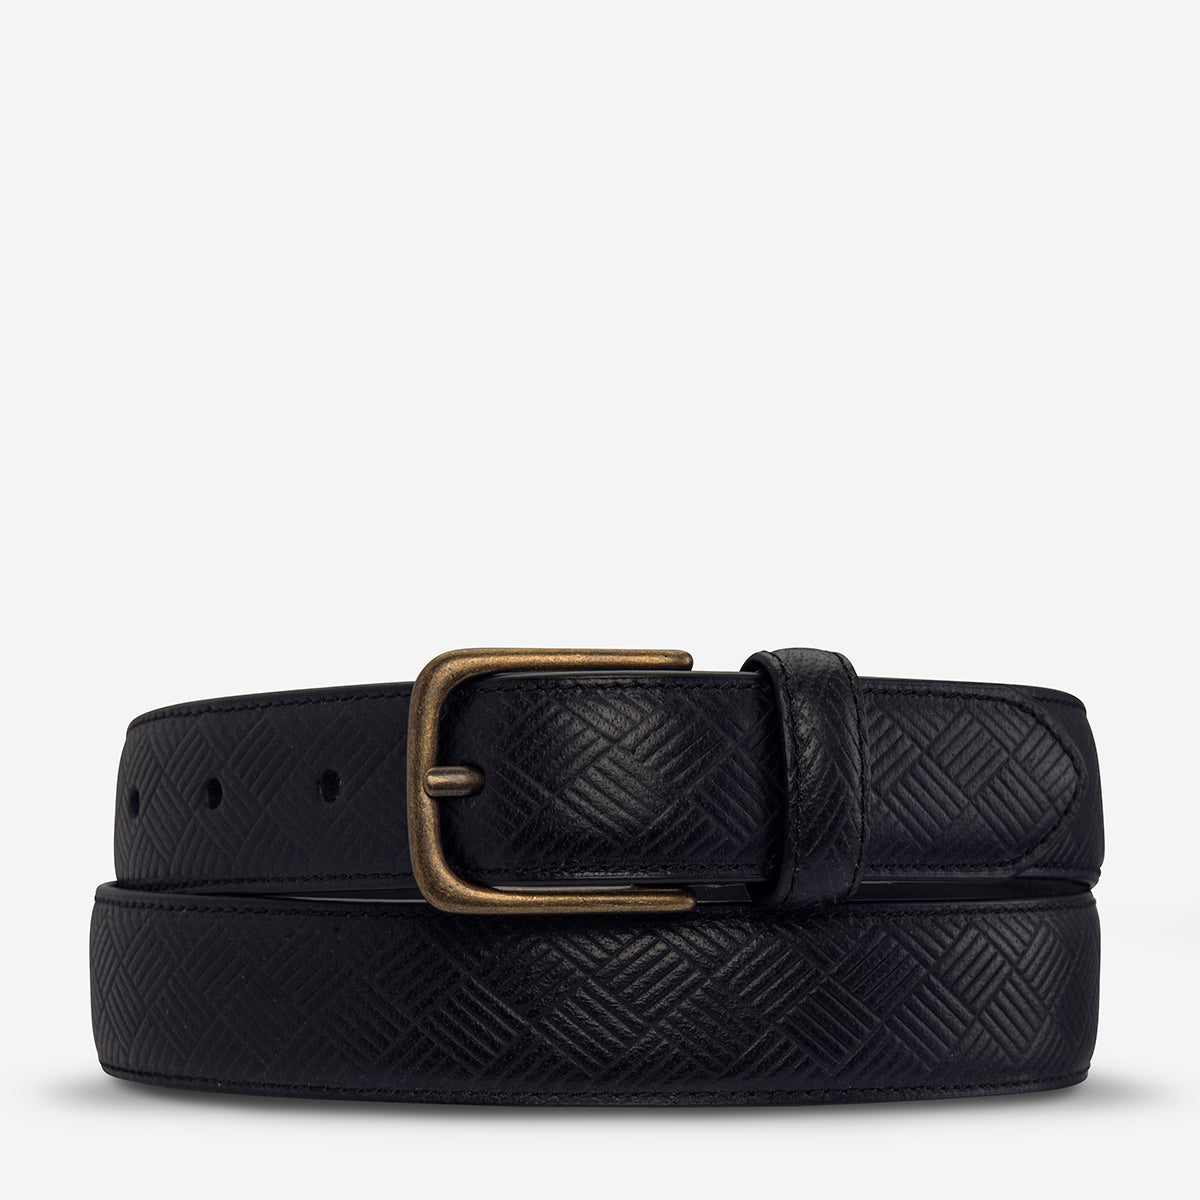 Status Anxiety Life After Men's Leather Belt - Black